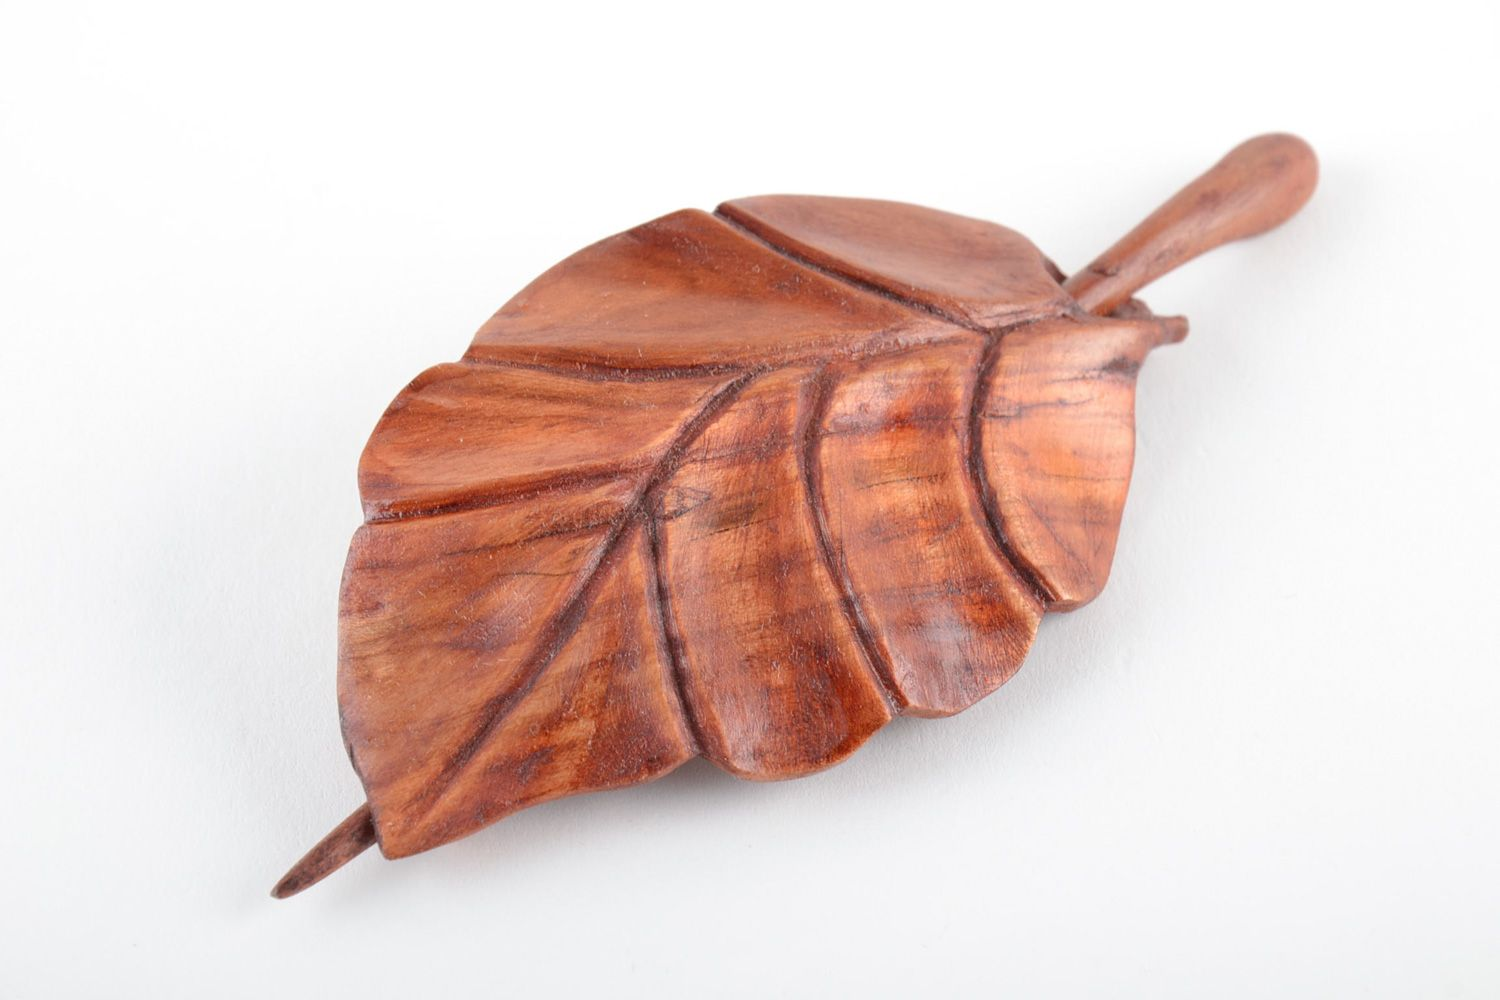 hair clips Handmade carved wooden hair clip in the shape of leaf coated with eco varnish - MADEheart.com